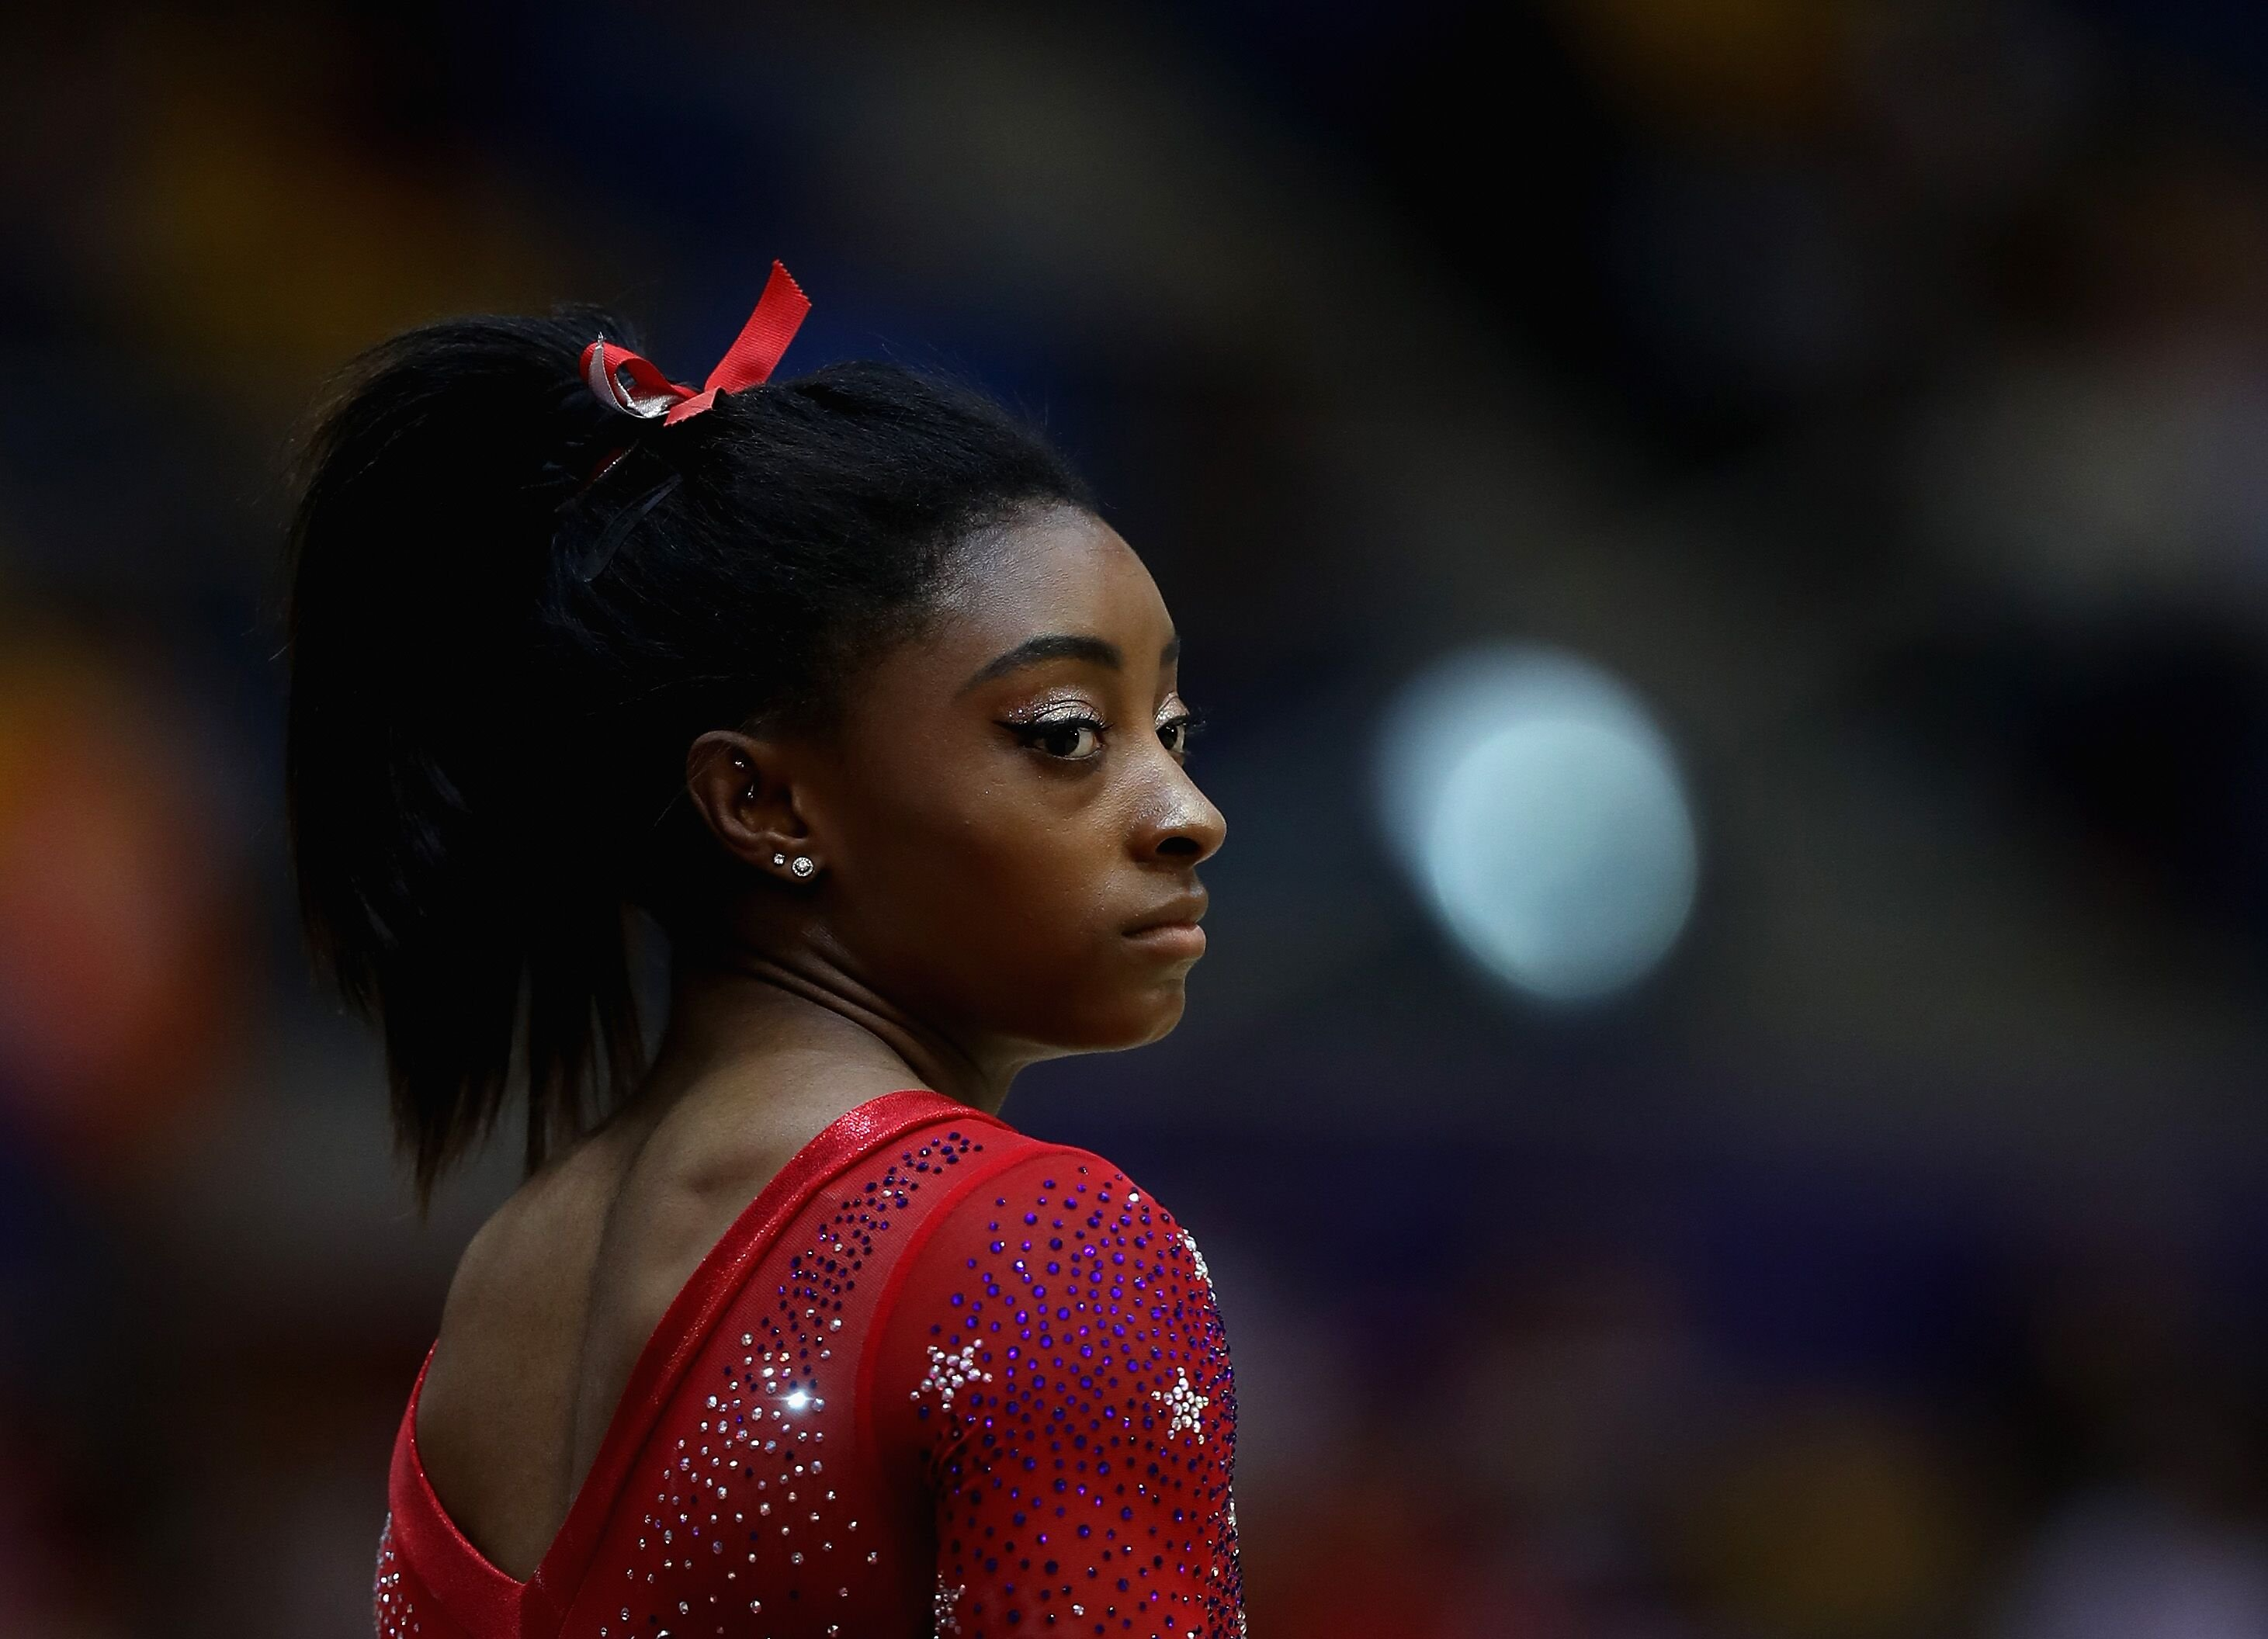 Simone Biles while at a gymnastics competition | Source: Getty Images/GlobalImagesUkraine